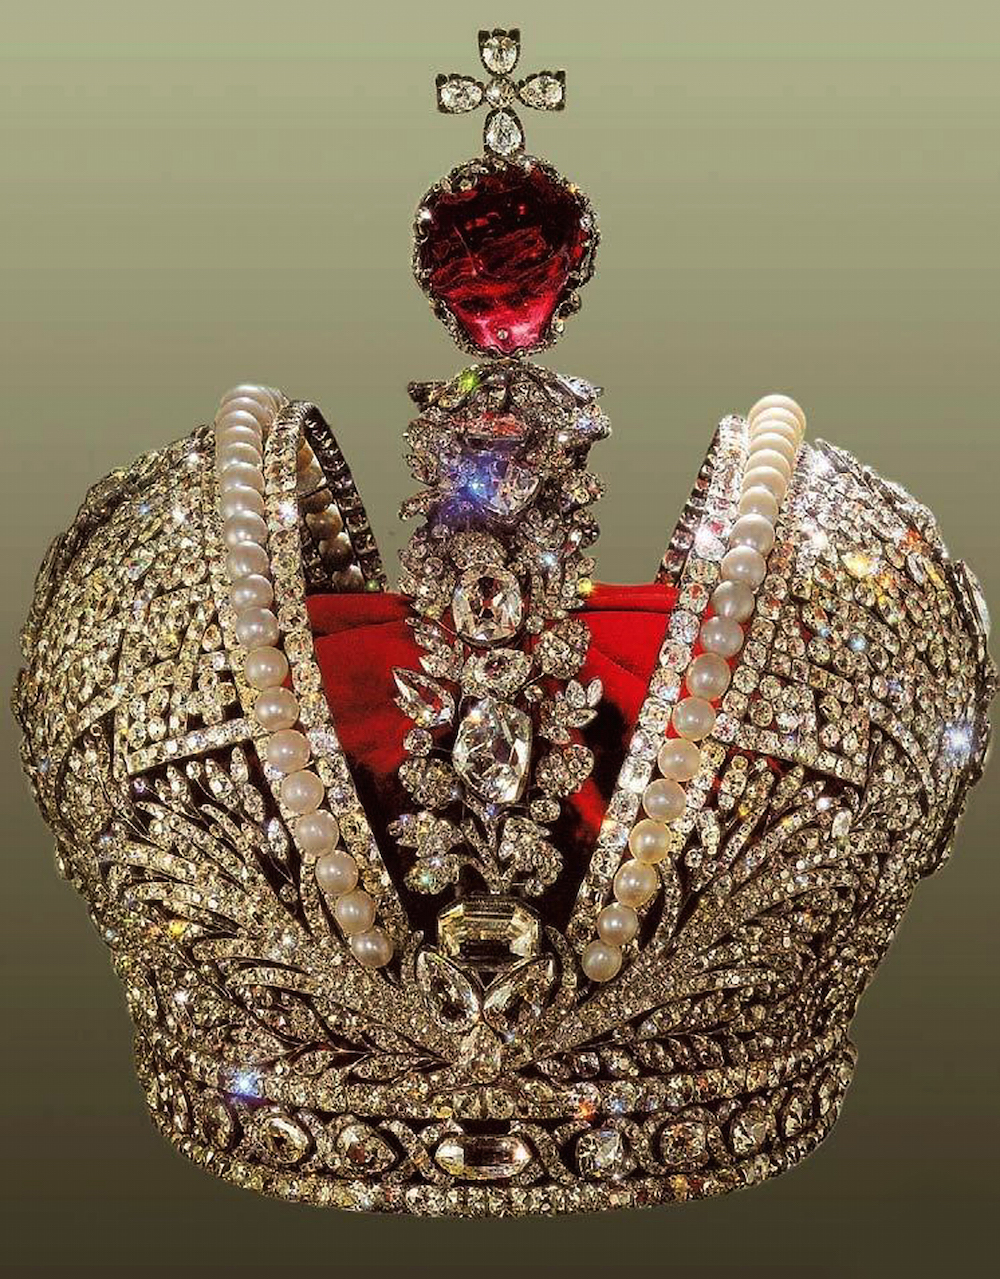 The Crown of Tsar Nicholas II, 1762 (mixed media)